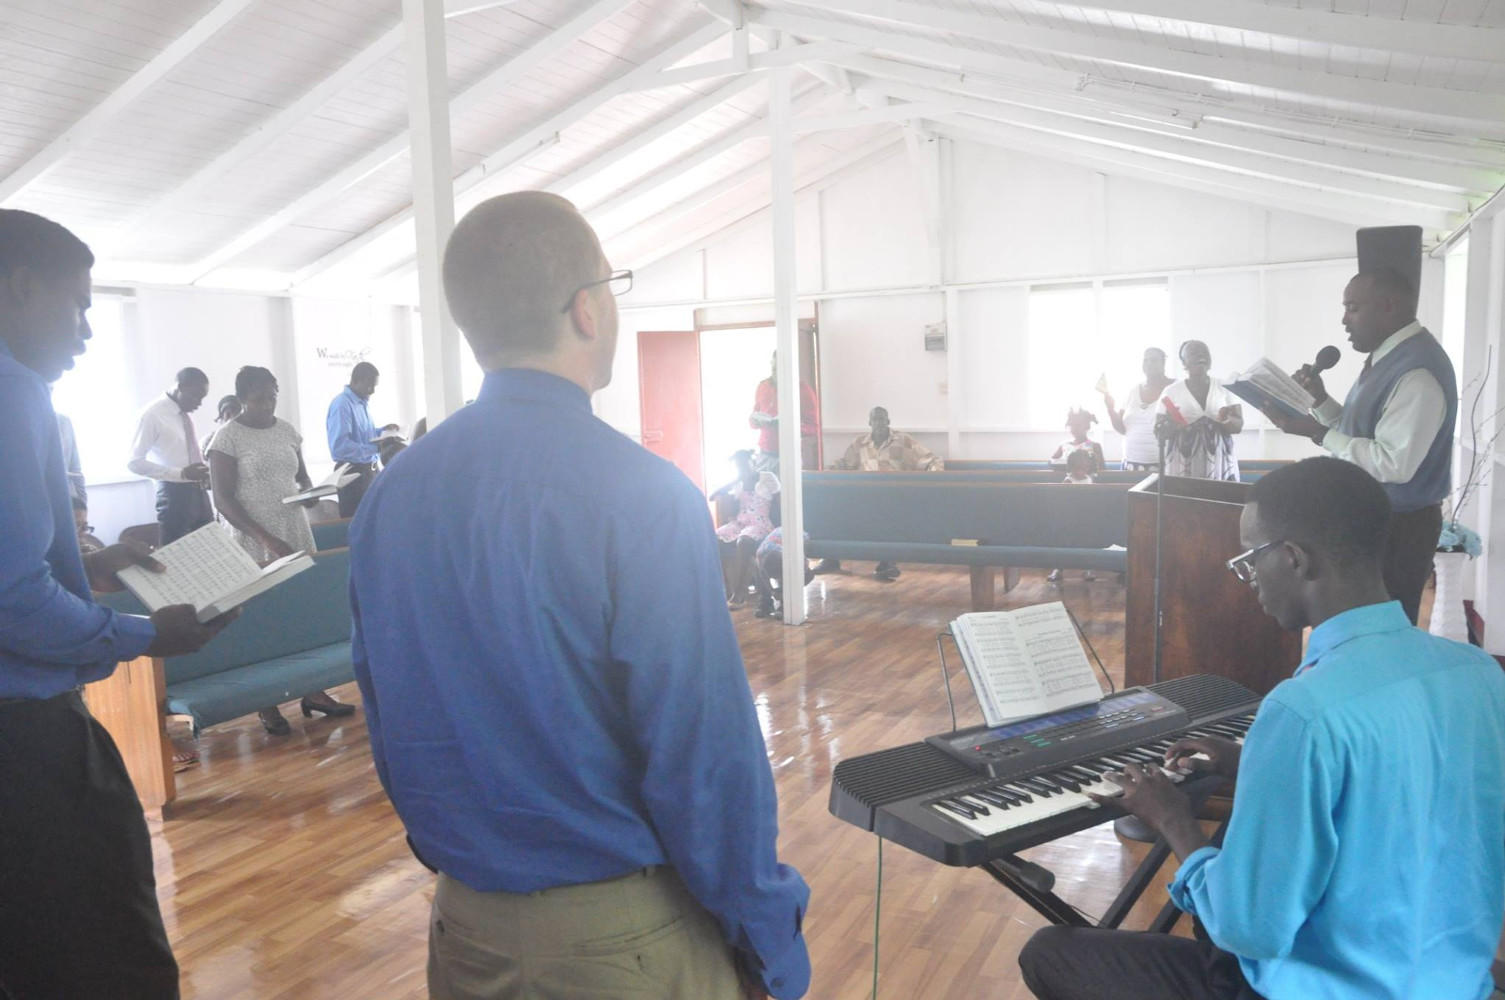 Church service with Bro. Steve leading music